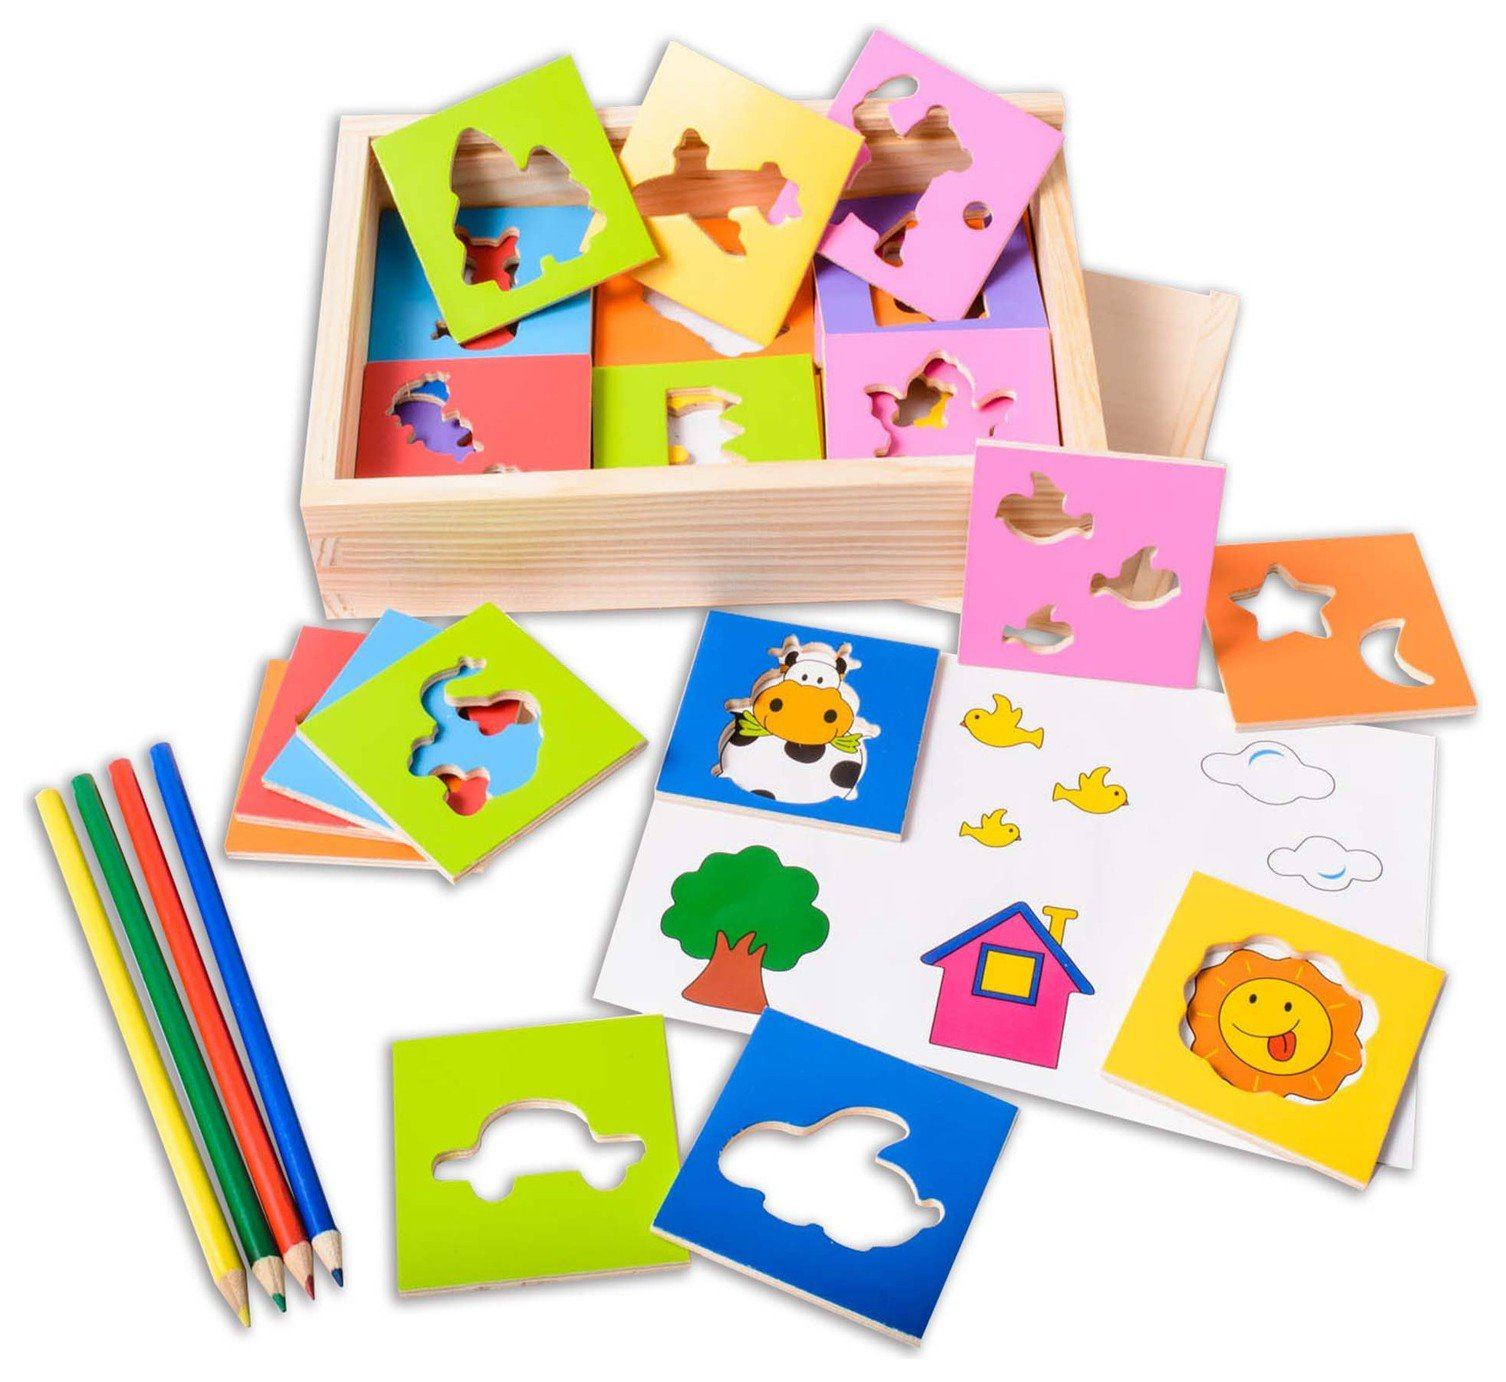 Image of EDUK8 Wooden Toy Stencil Game